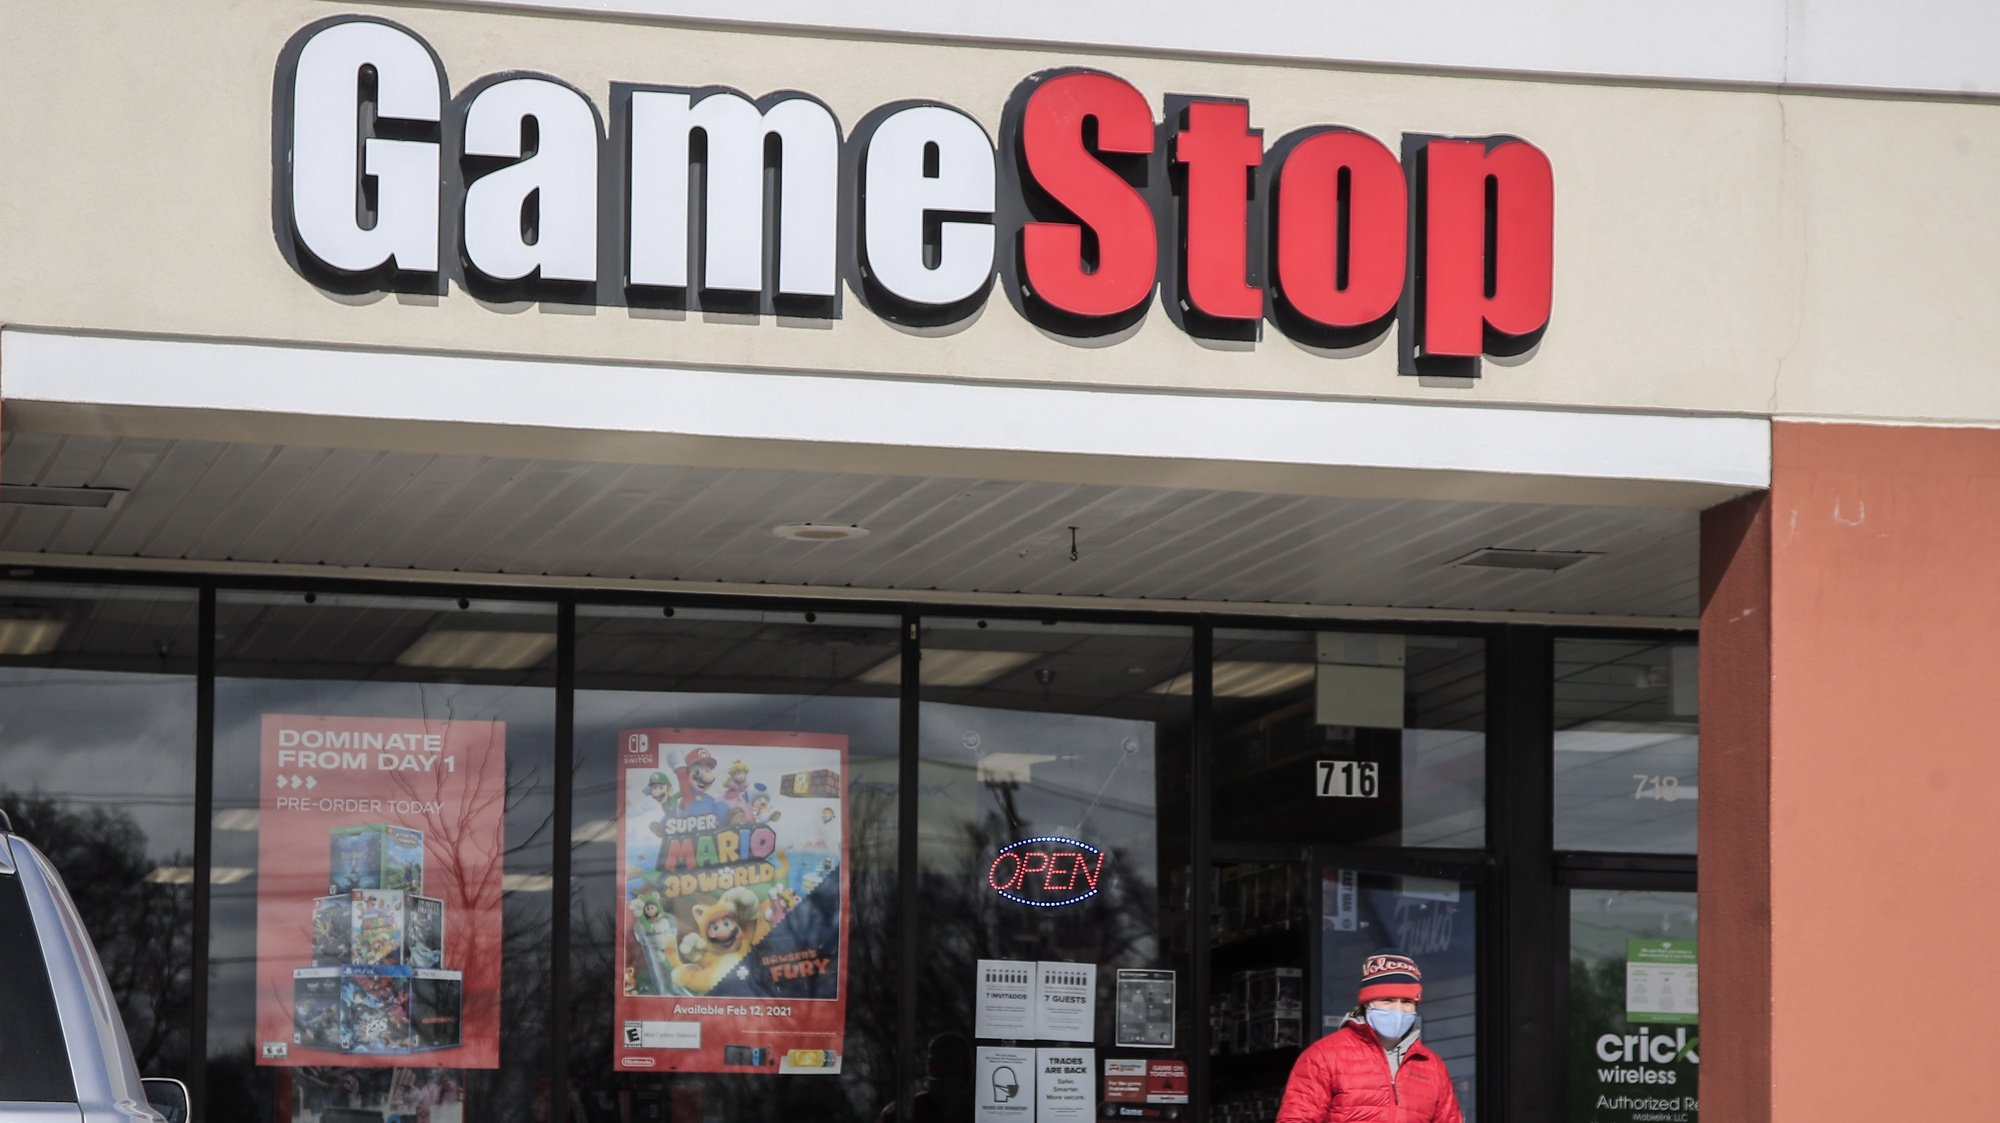 epa08969954 A customer leaves a GameStop store with his purchase in Round Lake Beach, Illinois, USA, 27 January 2021. The electronic game retailer has seen it's stock price soar from 3.25 US dollars in April 2020 to close at 347.51 US dollars on 27 January. The company has drawn interest from investors in online chat groups and created as much as 3 billion US dollars in value losses for short sellers.  EPA/TANNEN MAURY